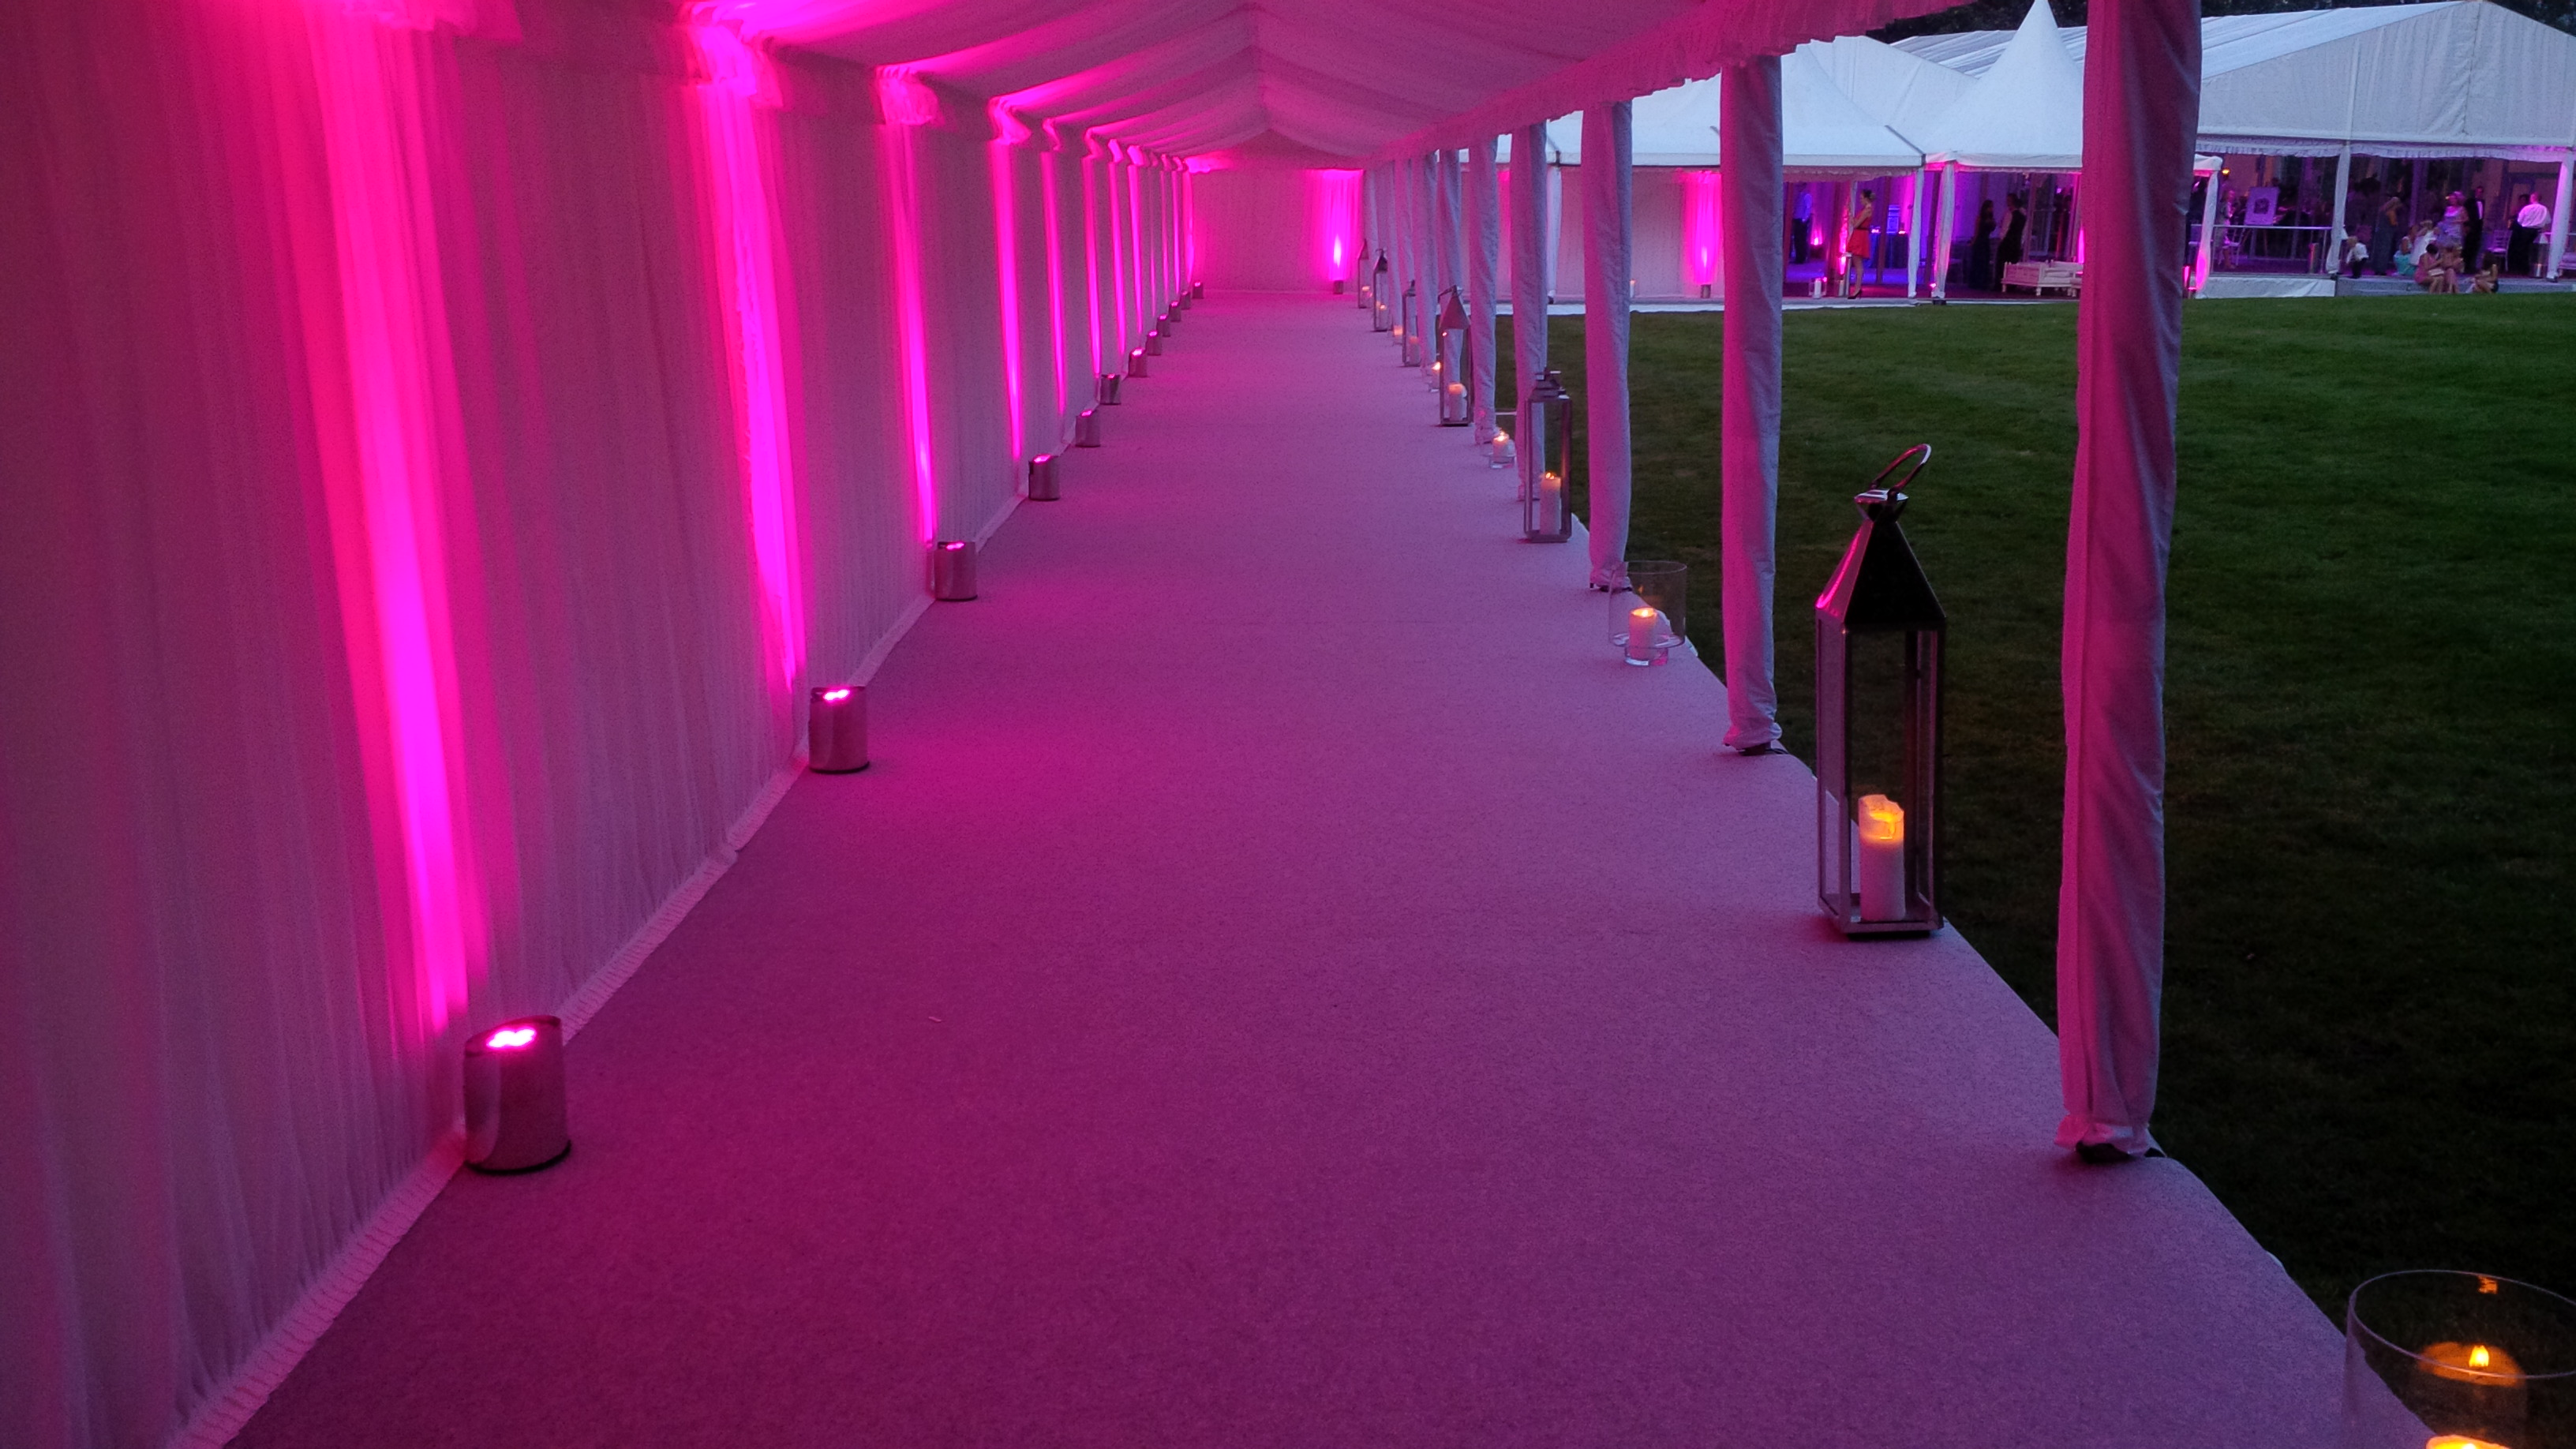 Credit: Luminate Events - Tattom Park - ColourPoint CORE Lighting